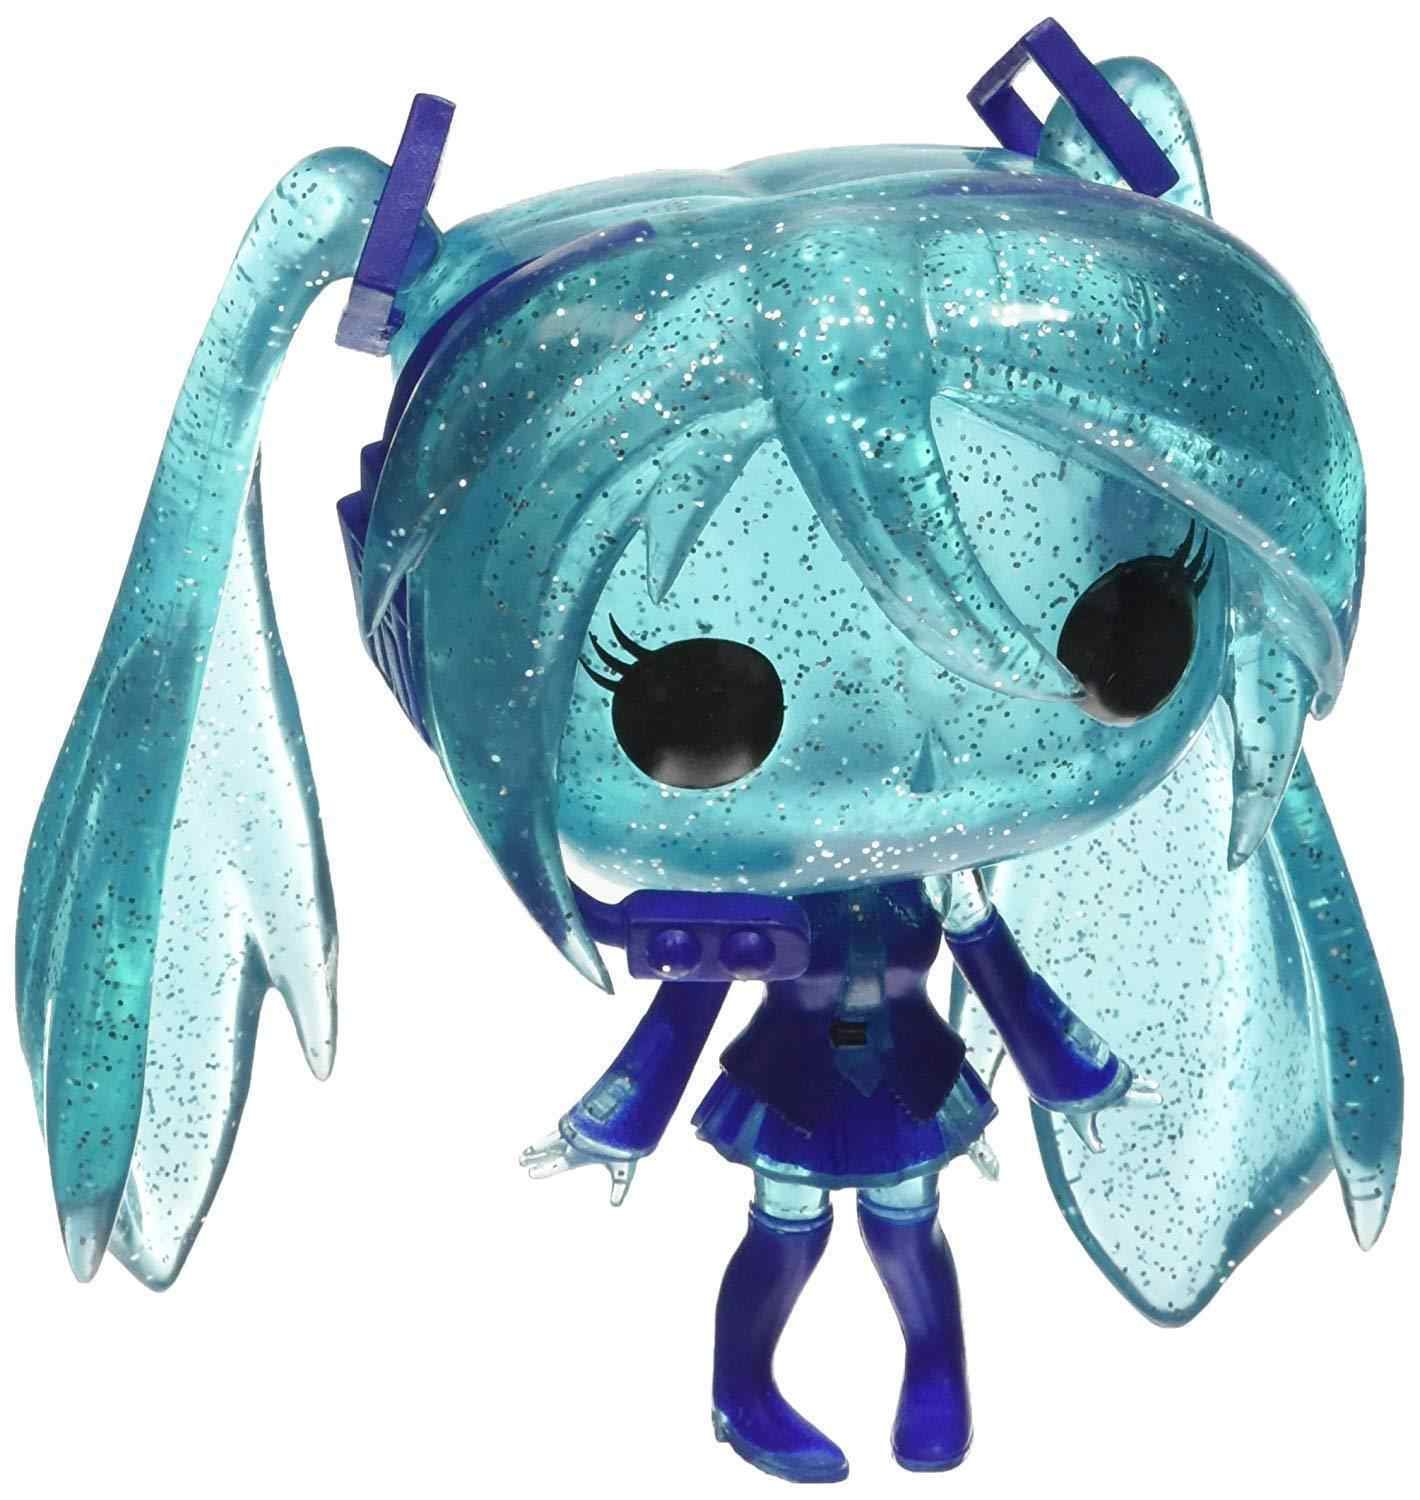 Oficial exclusivo Cristal Vinil Funko pop Hatsune Miku Action Figure Collectible Modelo Toy com Caixa Original